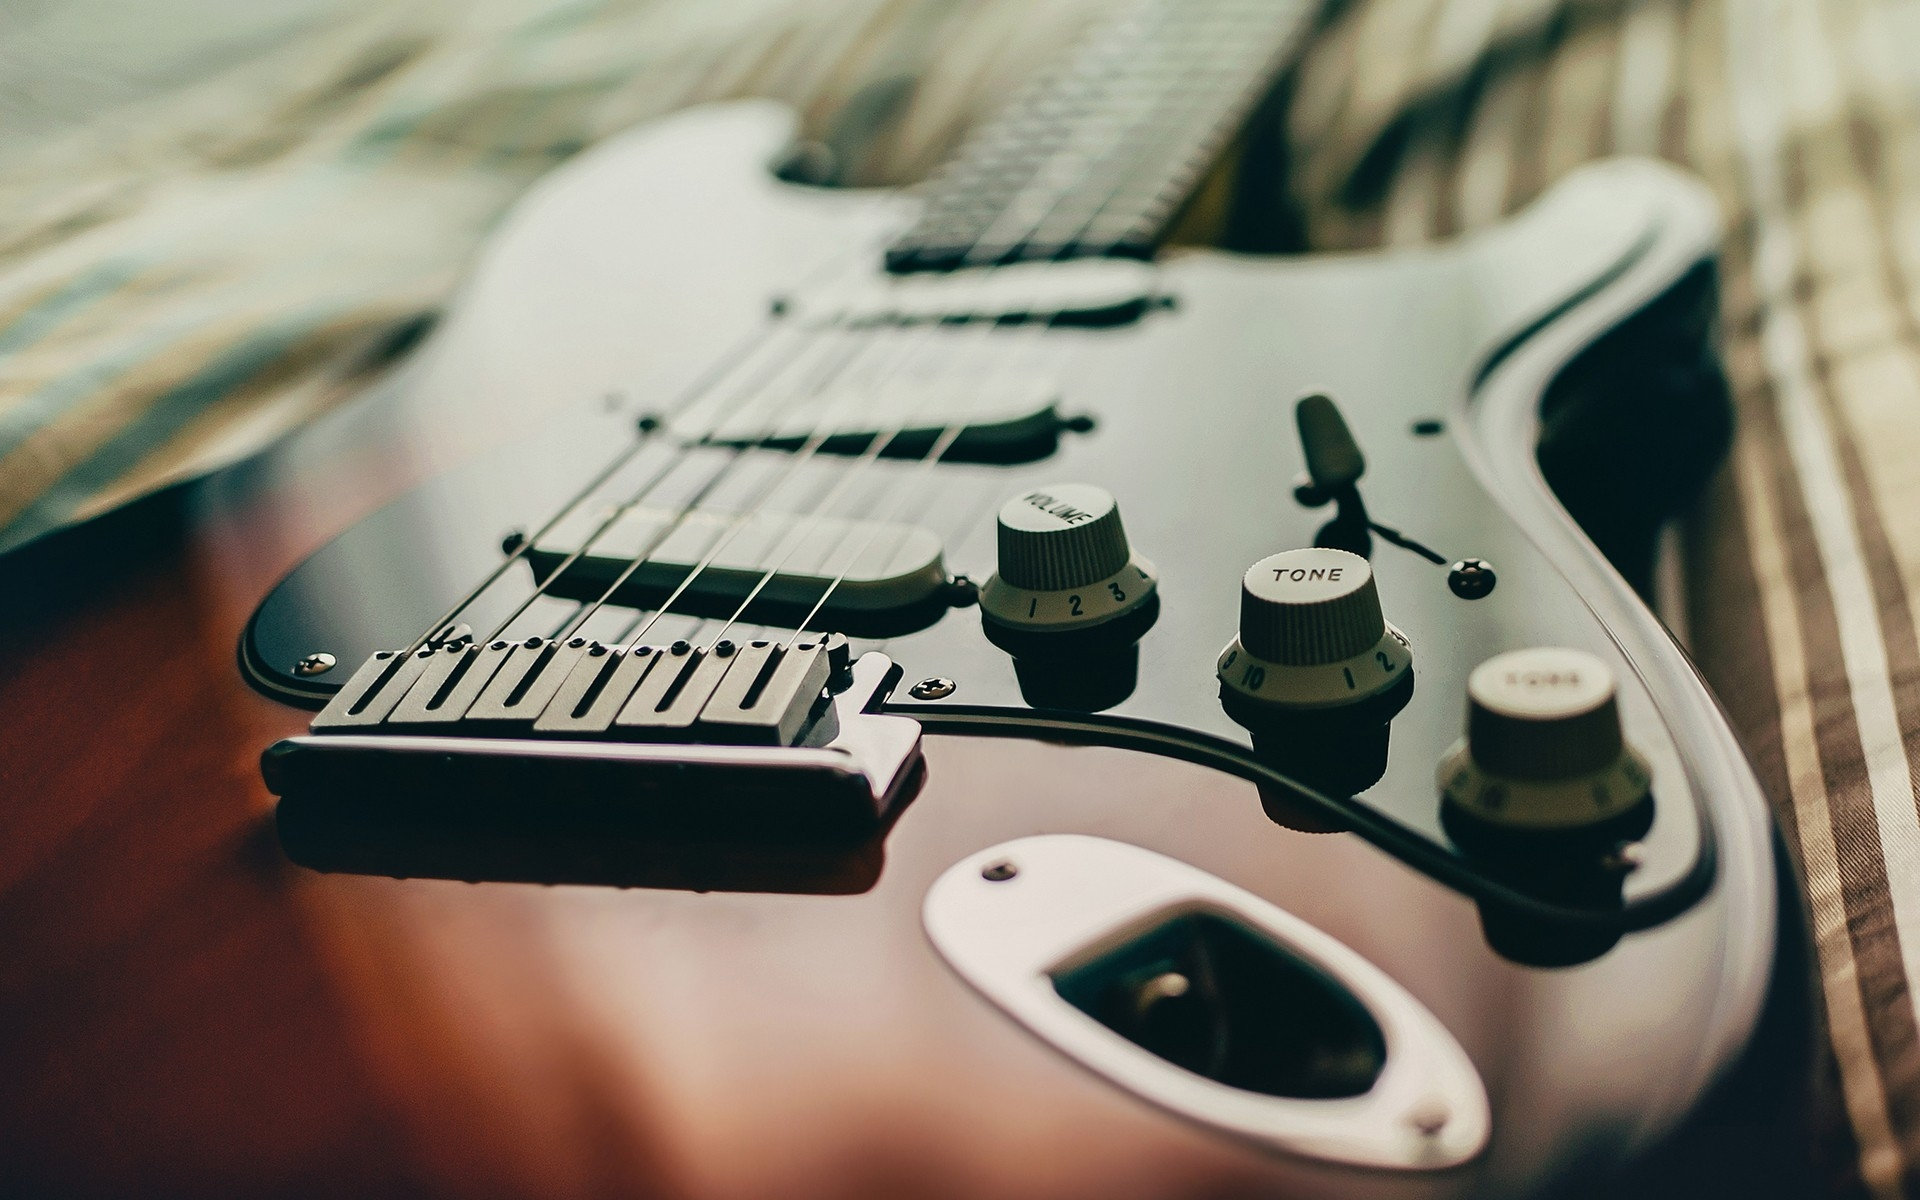 photography of electric guitar hd wallpaper hd latest wallpapers. Black Bedroom Furniture Sets. Home Design Ideas